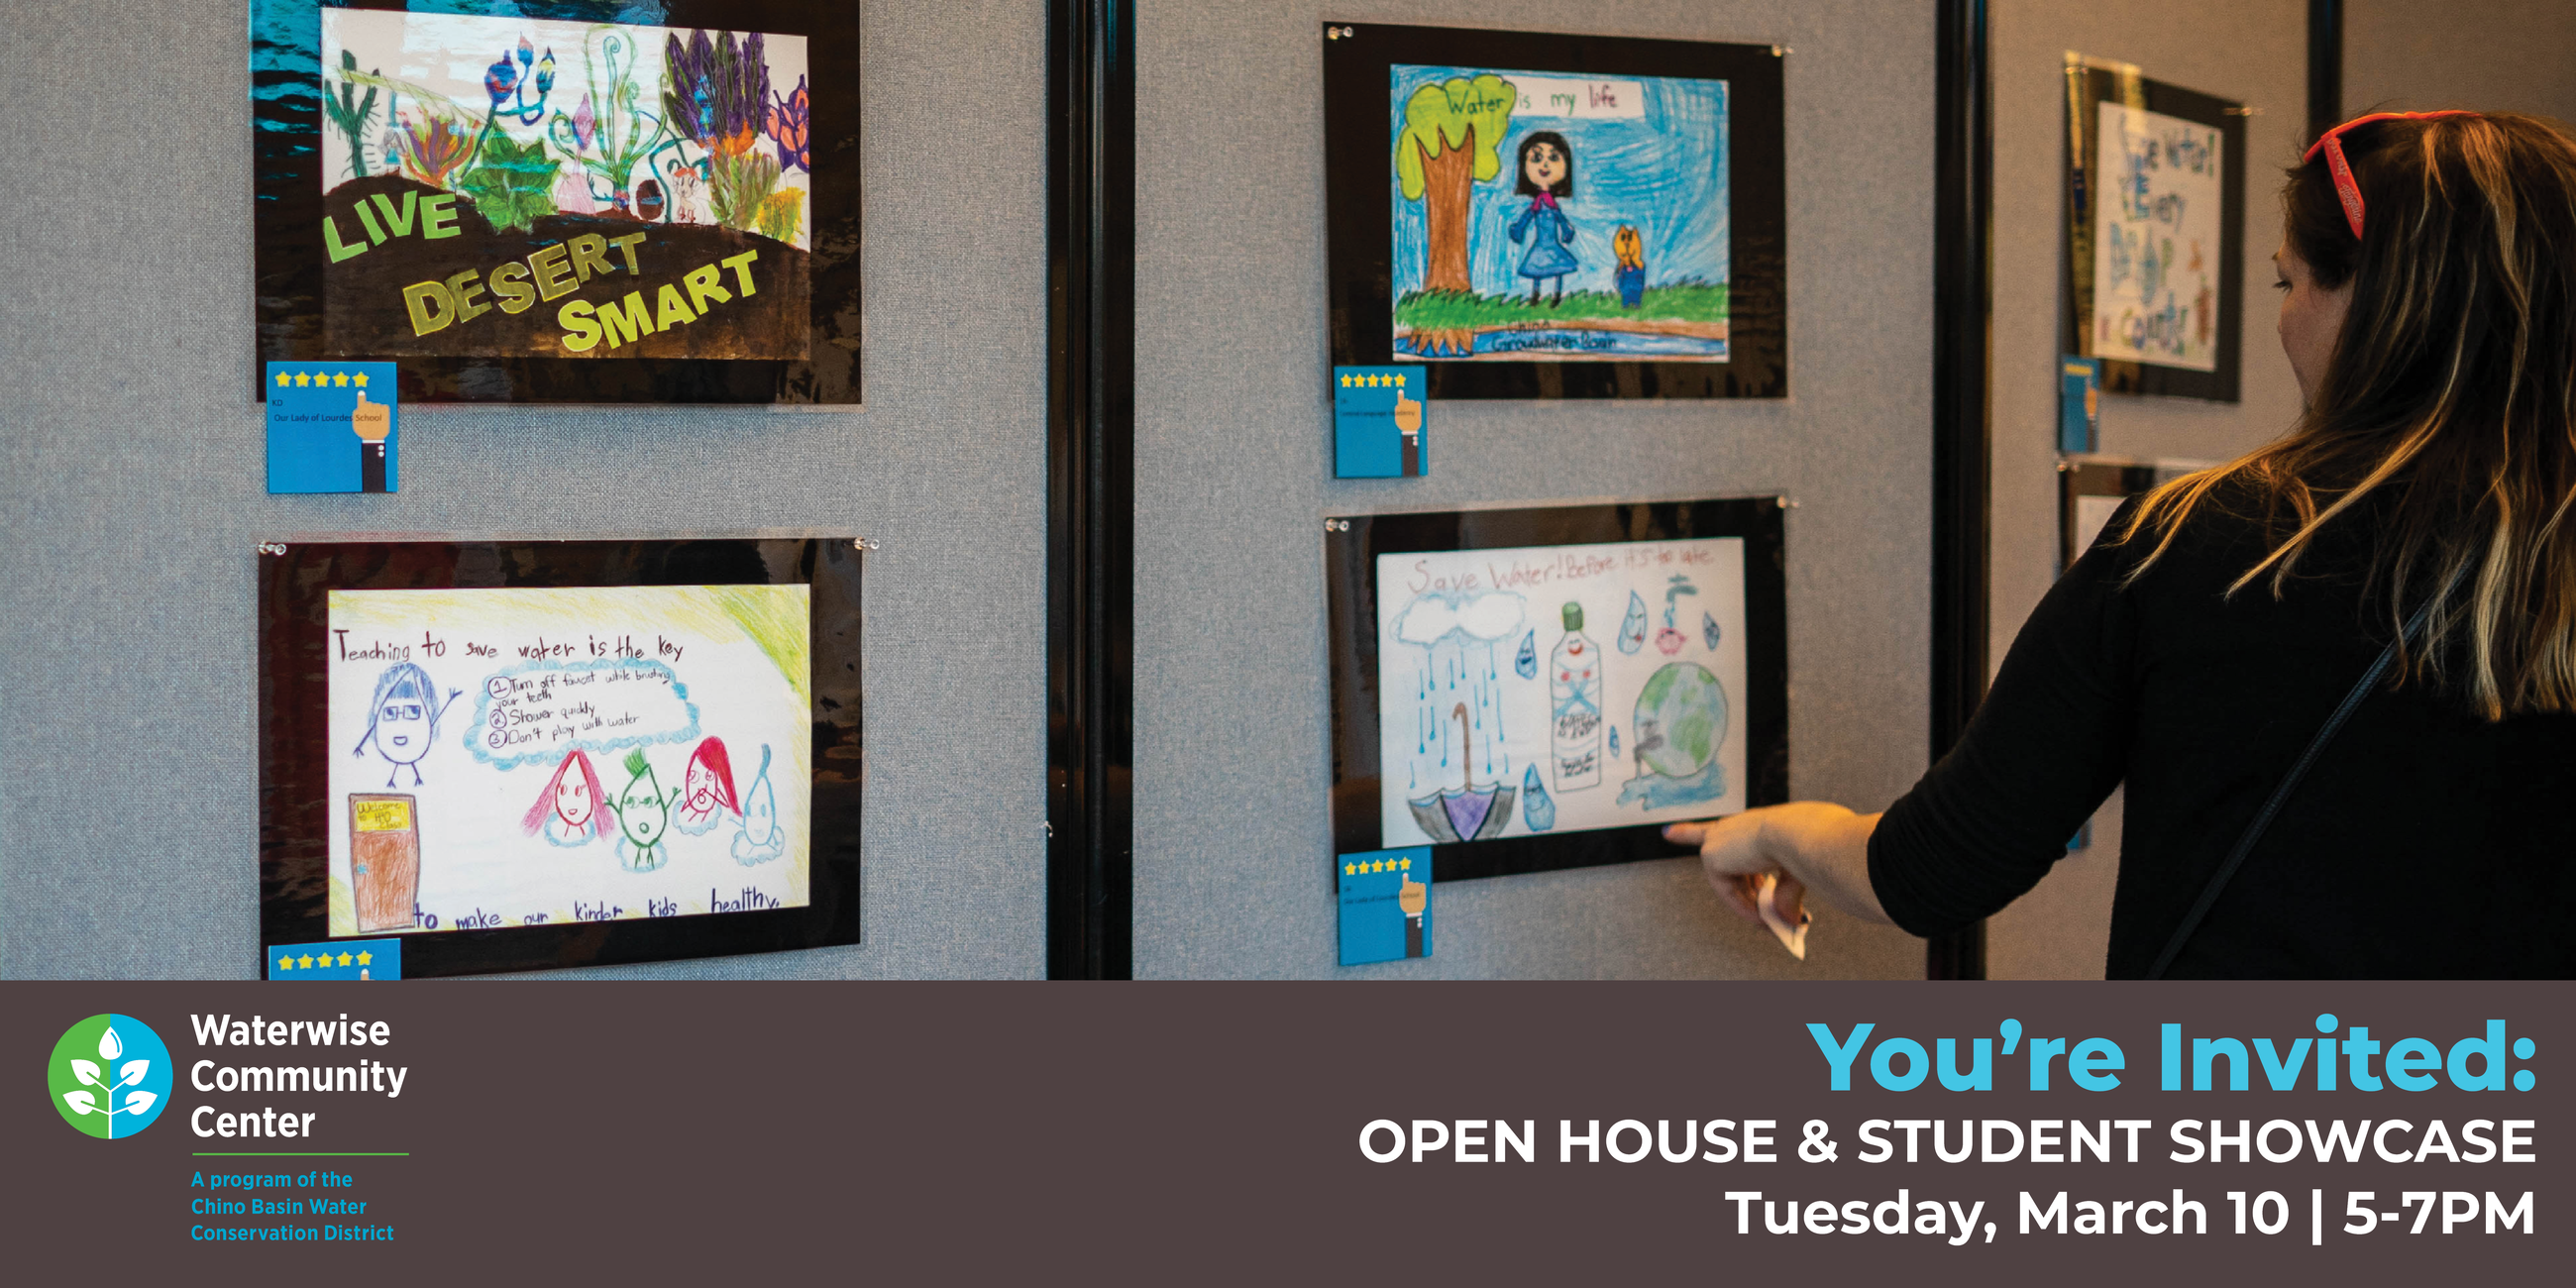 Open House & Student Showcase. Tuesday, March 10 at 5-7pm.